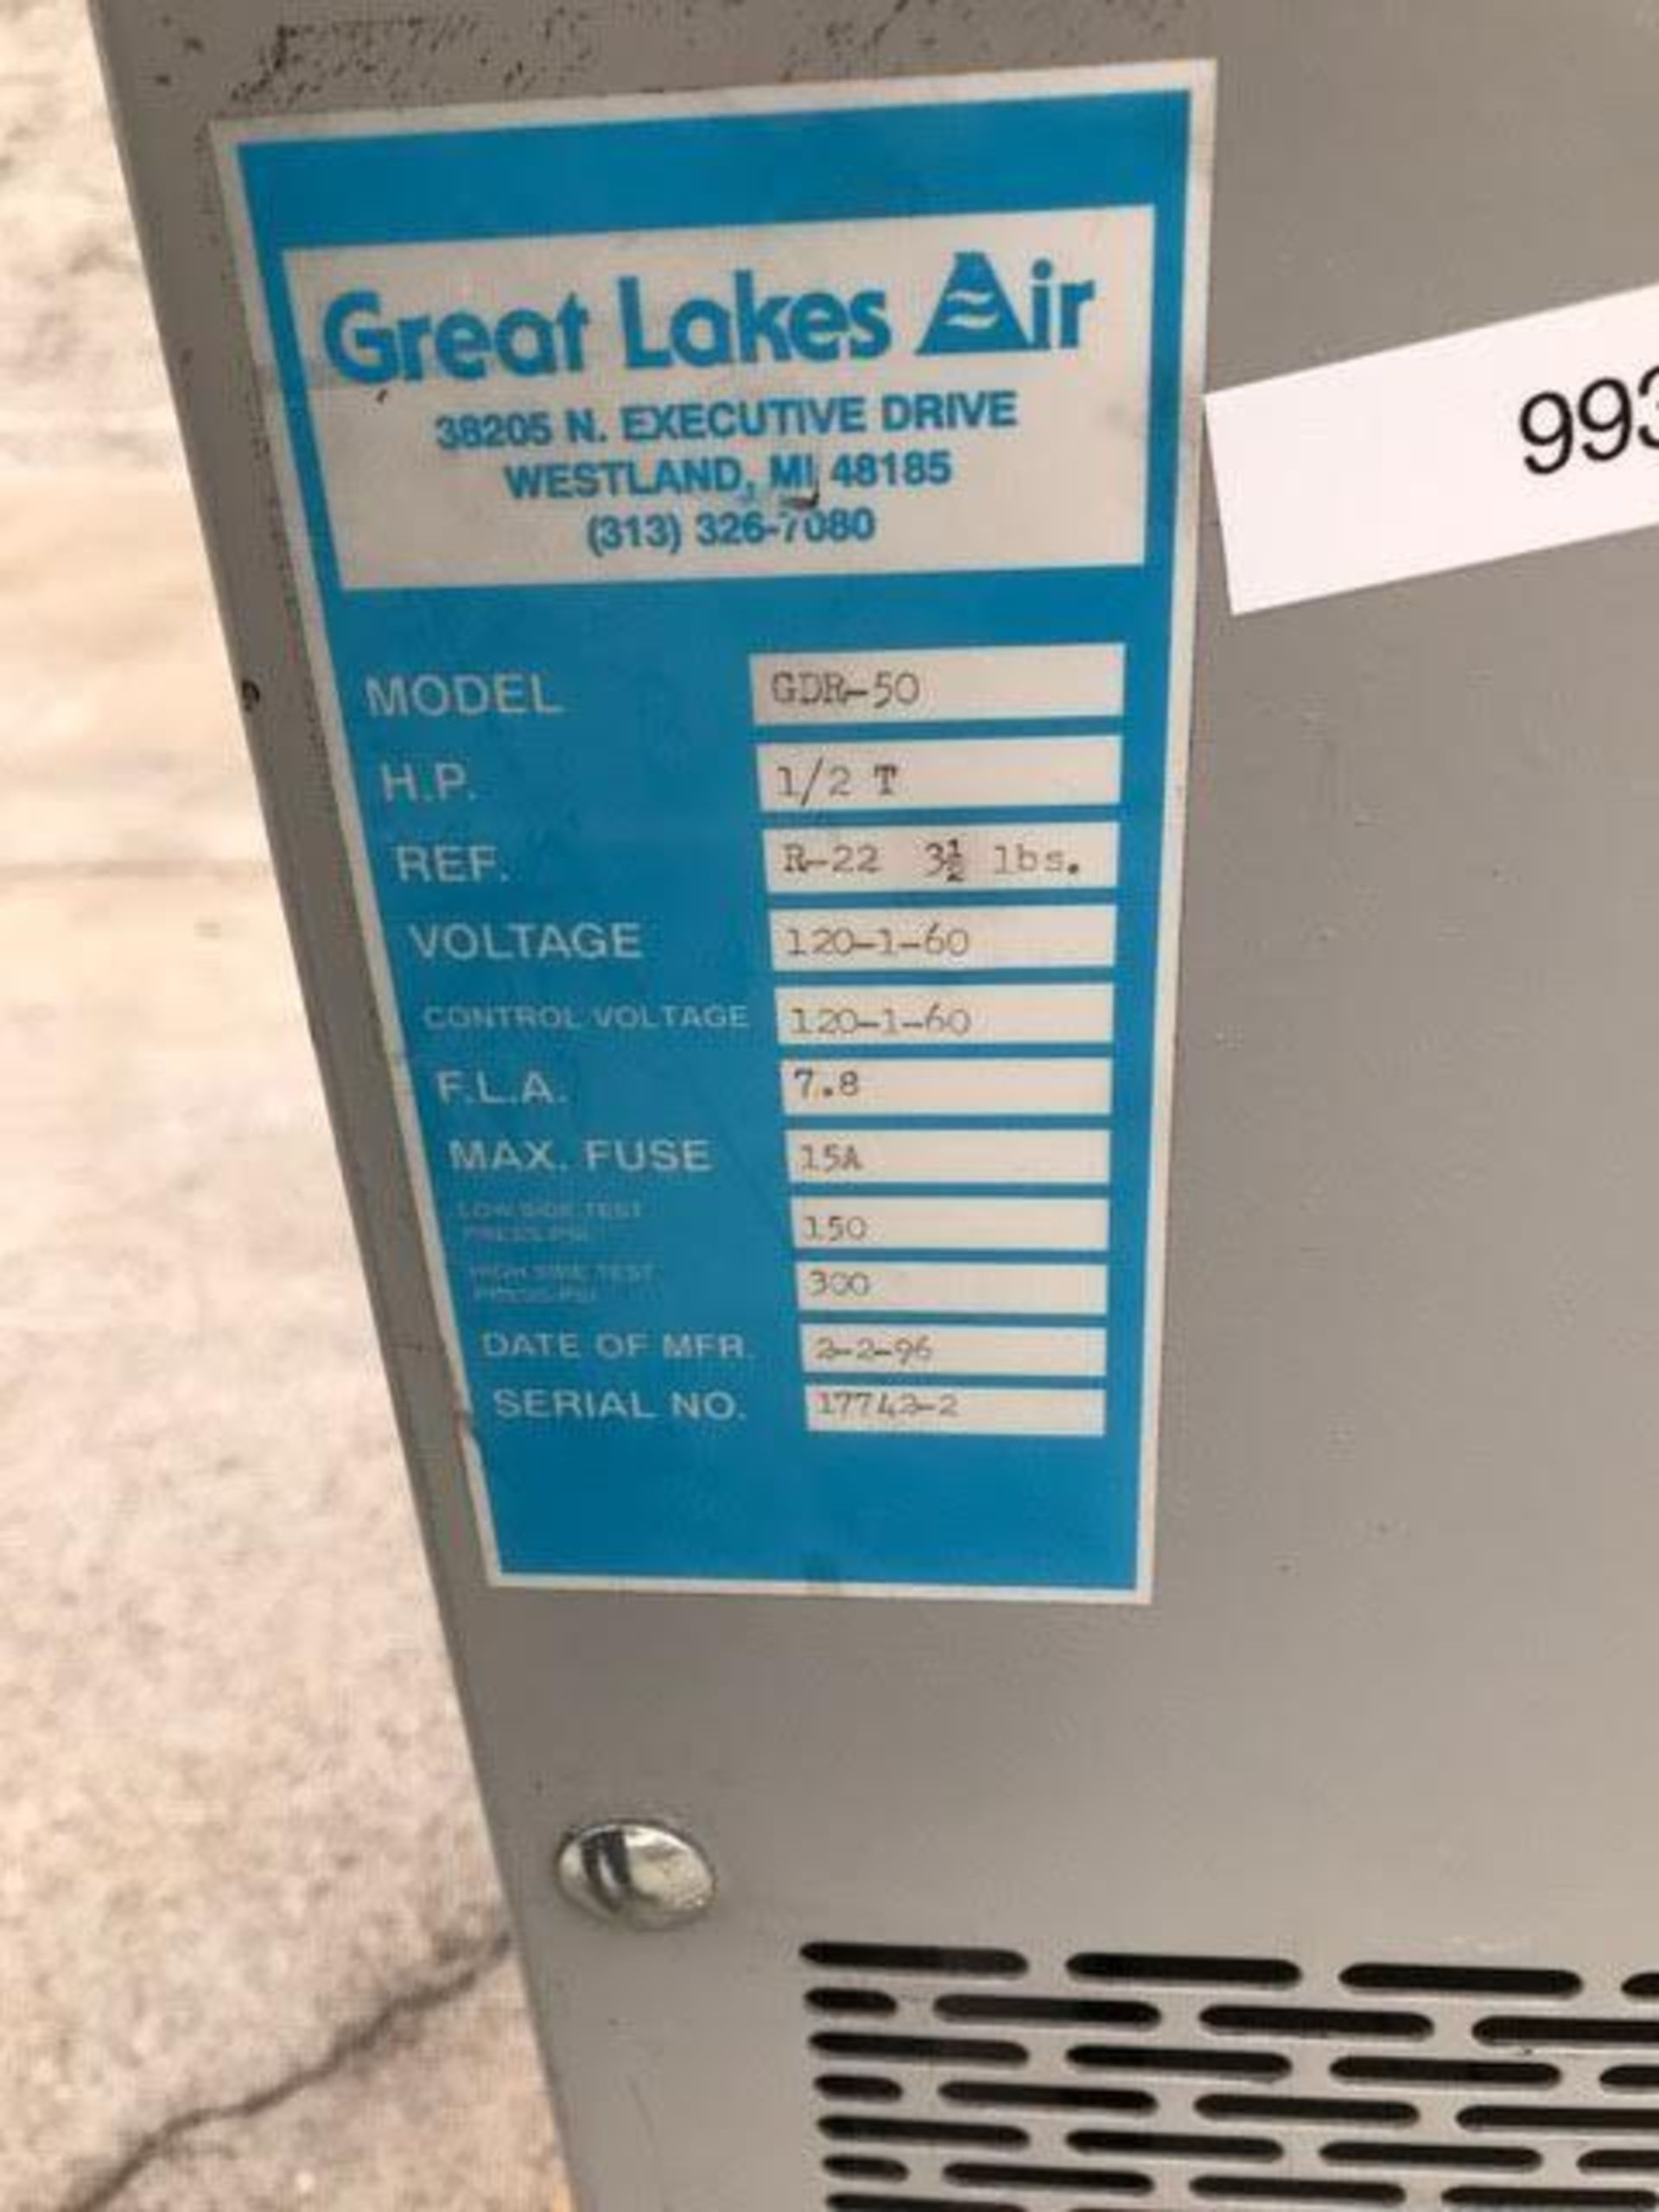 Lot 87 - Great Lakes Air Compressed Air Dryer